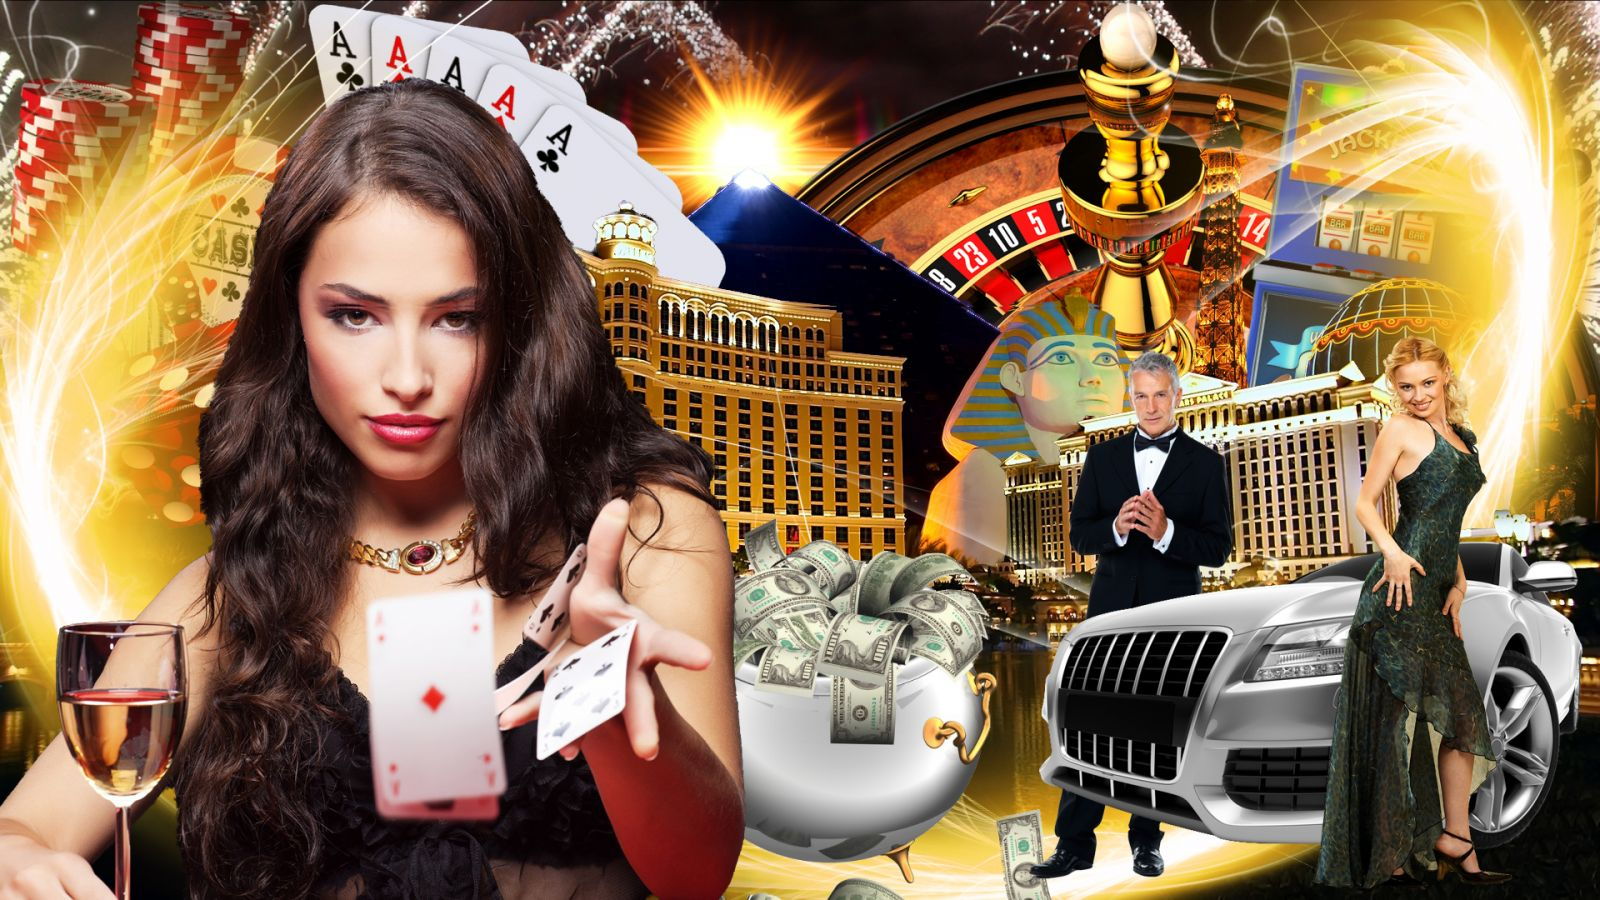 Best online Casino click on the link   https://www.gtbets.eu/lp-football-betting?refer=1717   NFL NBA  betting * Mobile betting* live betting*Horse Race betting bring in the holidays right big jackpots